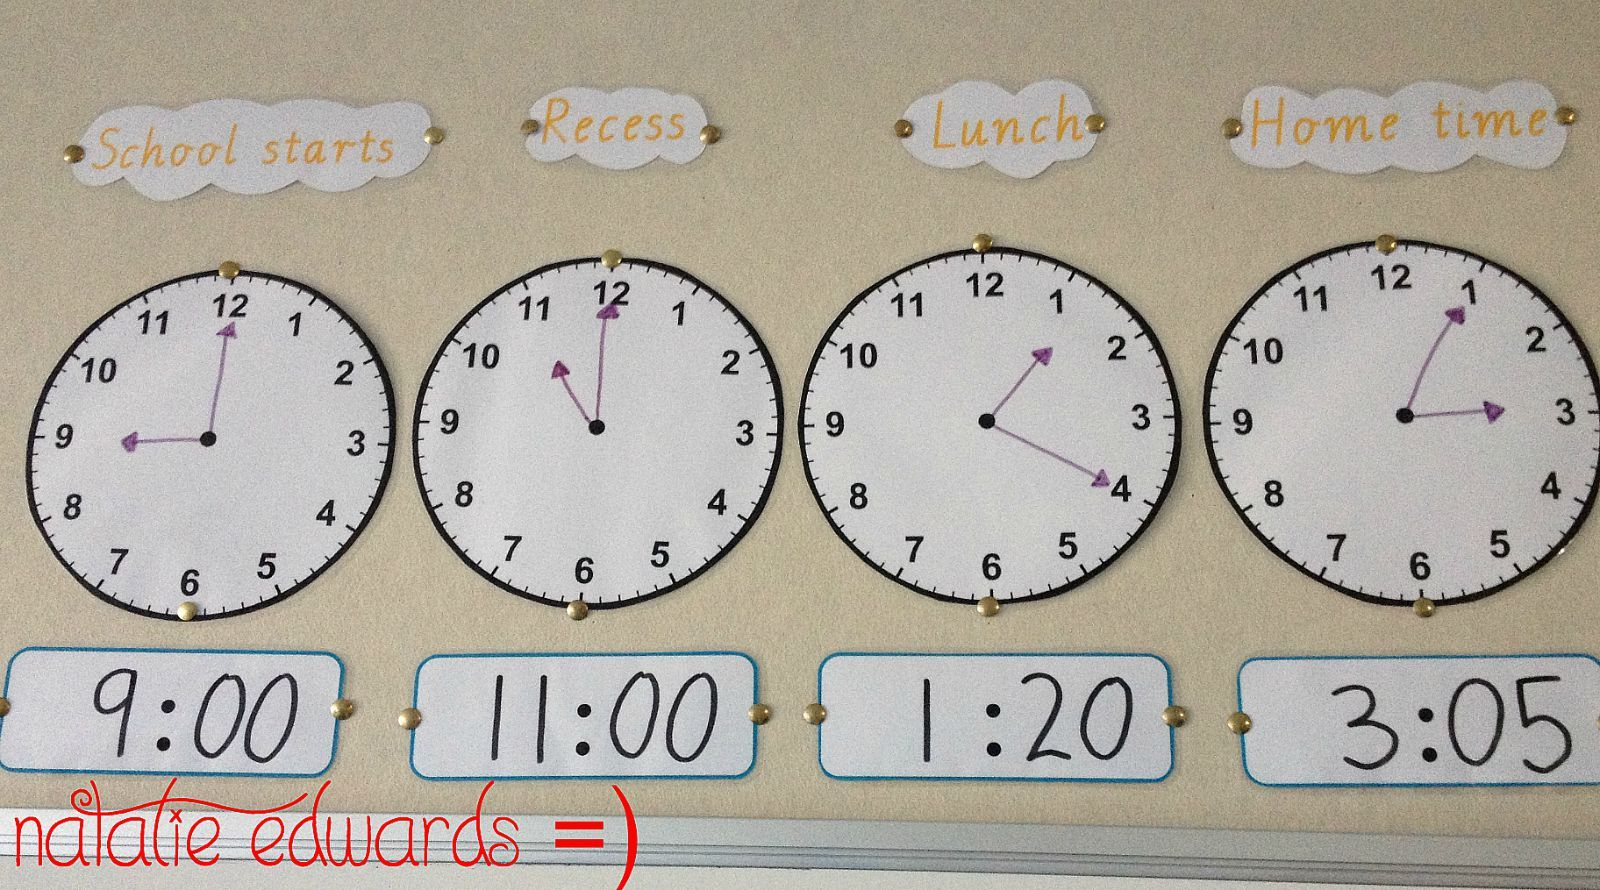 This clock display shows the students the analogue and digital clock times for when the day starts, recess time, lunch time and home time.